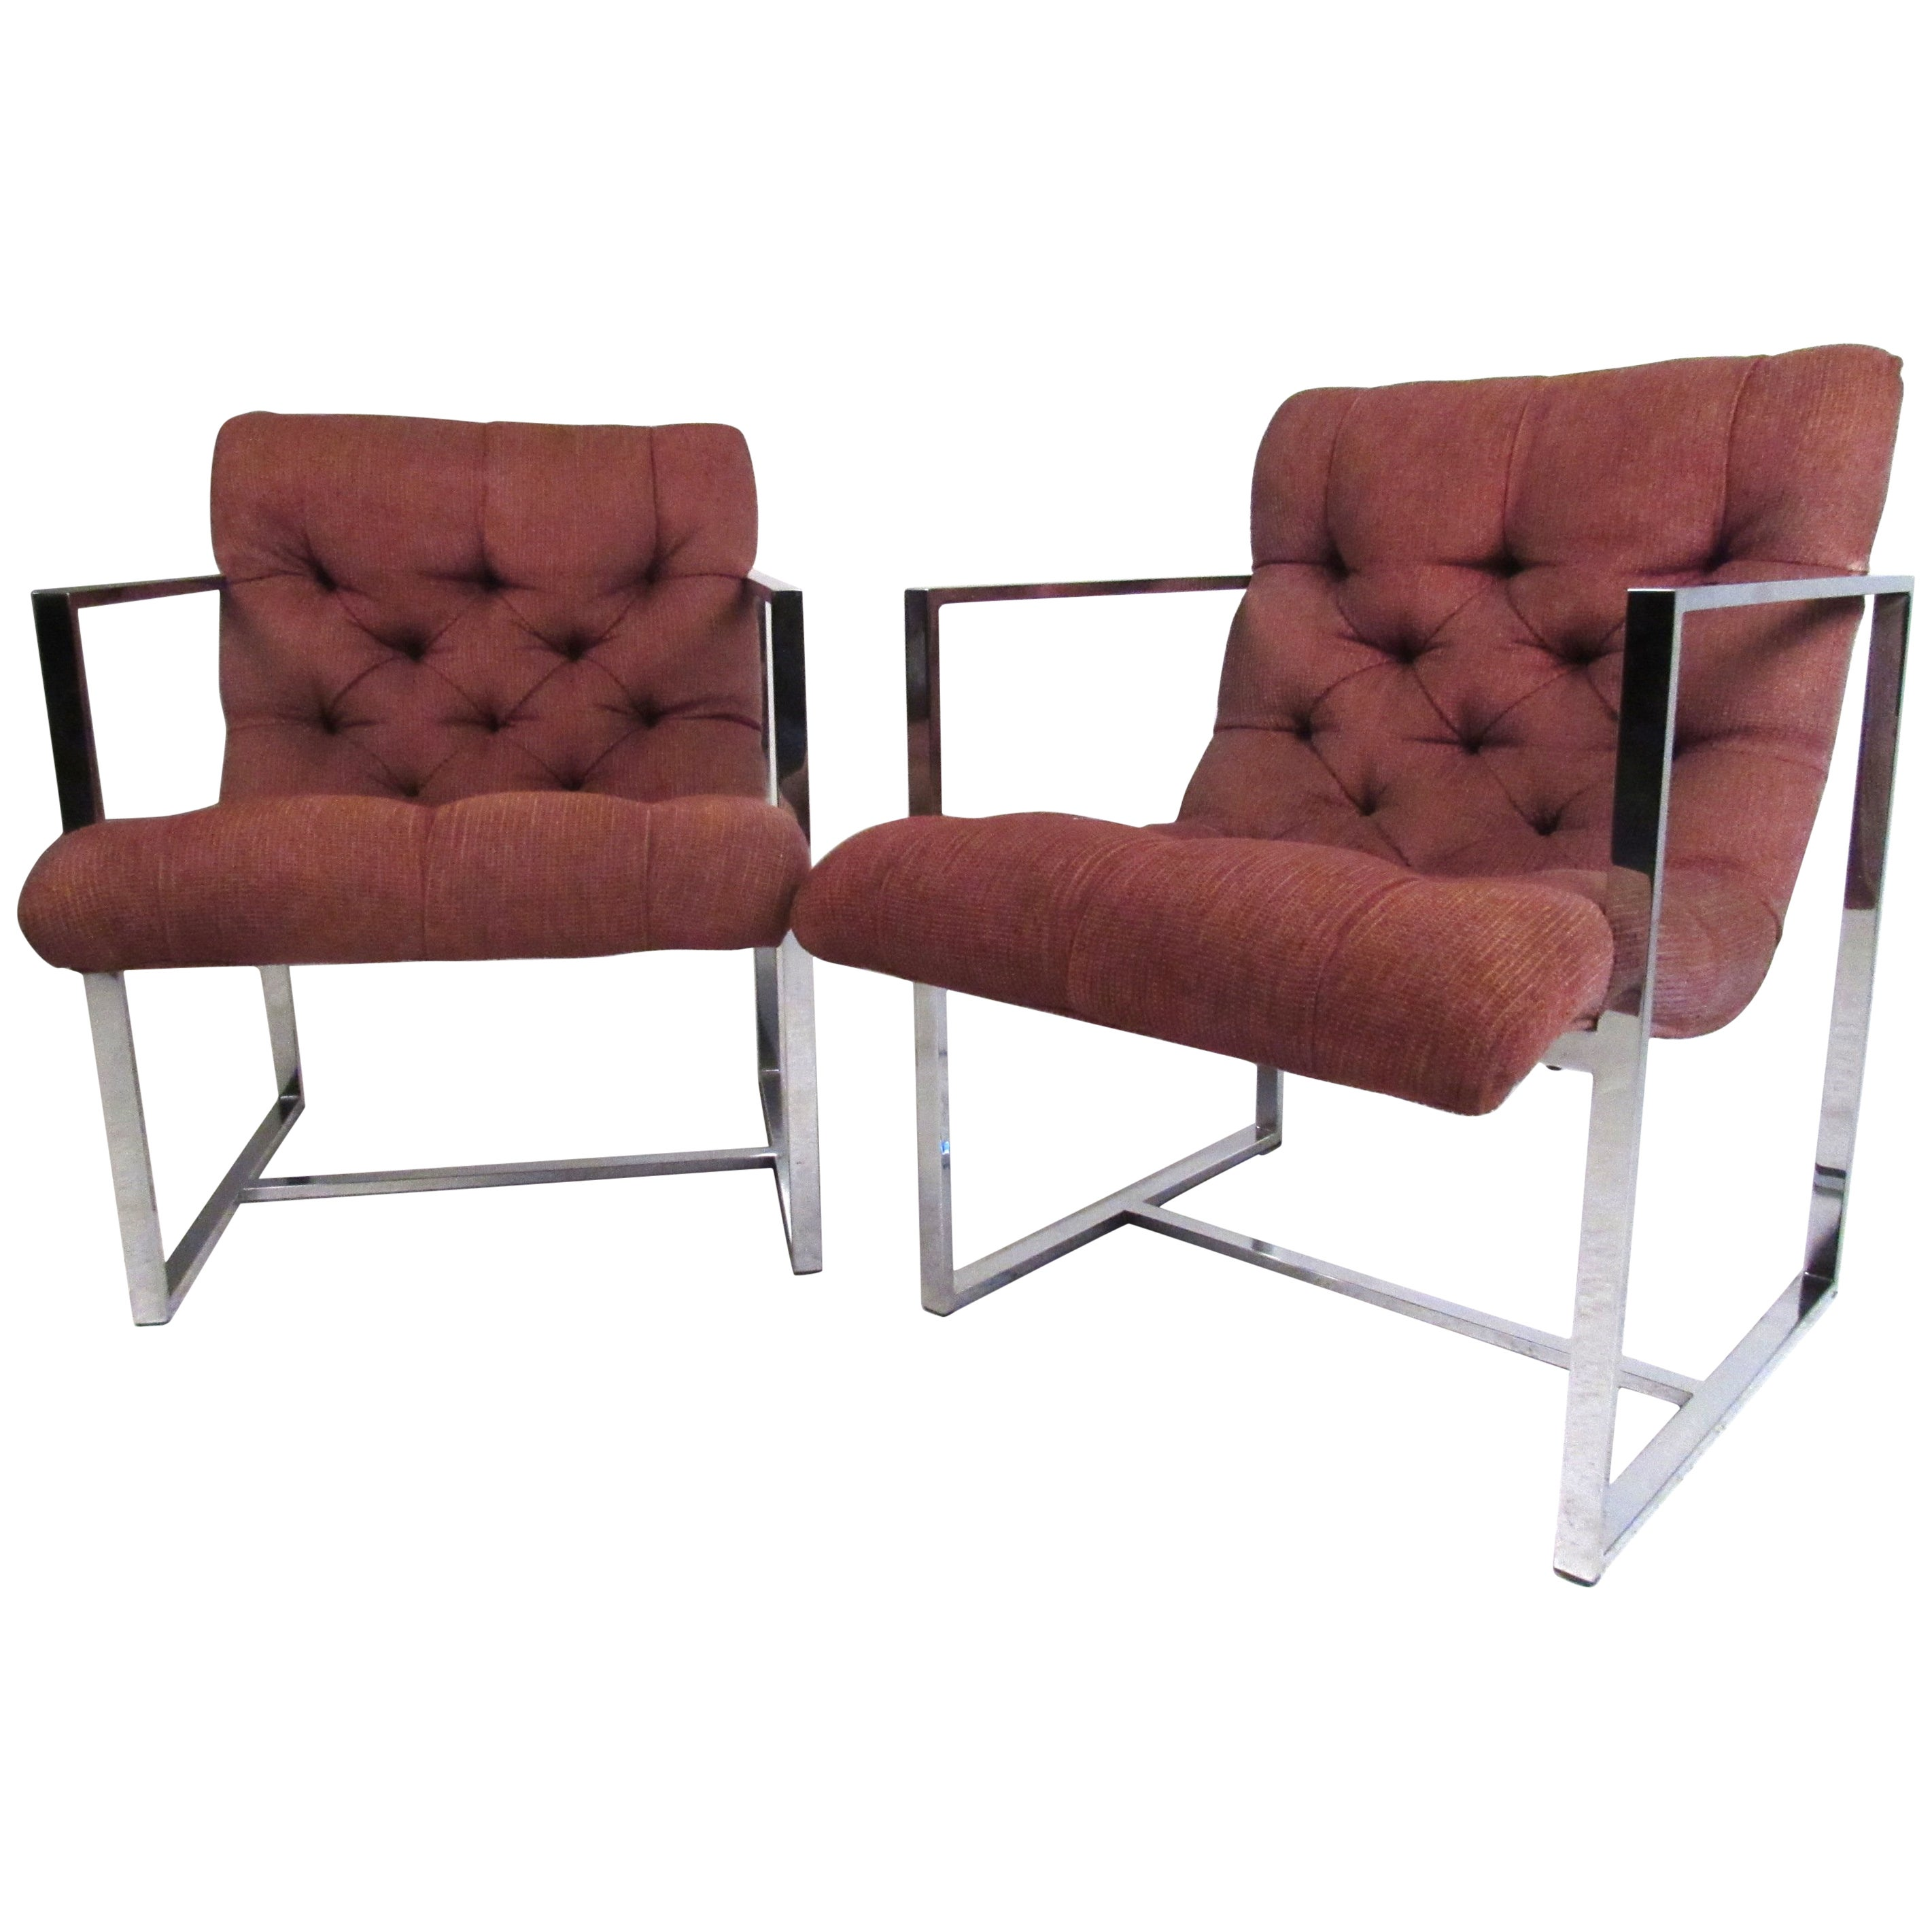 Pair of Mid-Century Milo Baughman Style Lounge Chairs